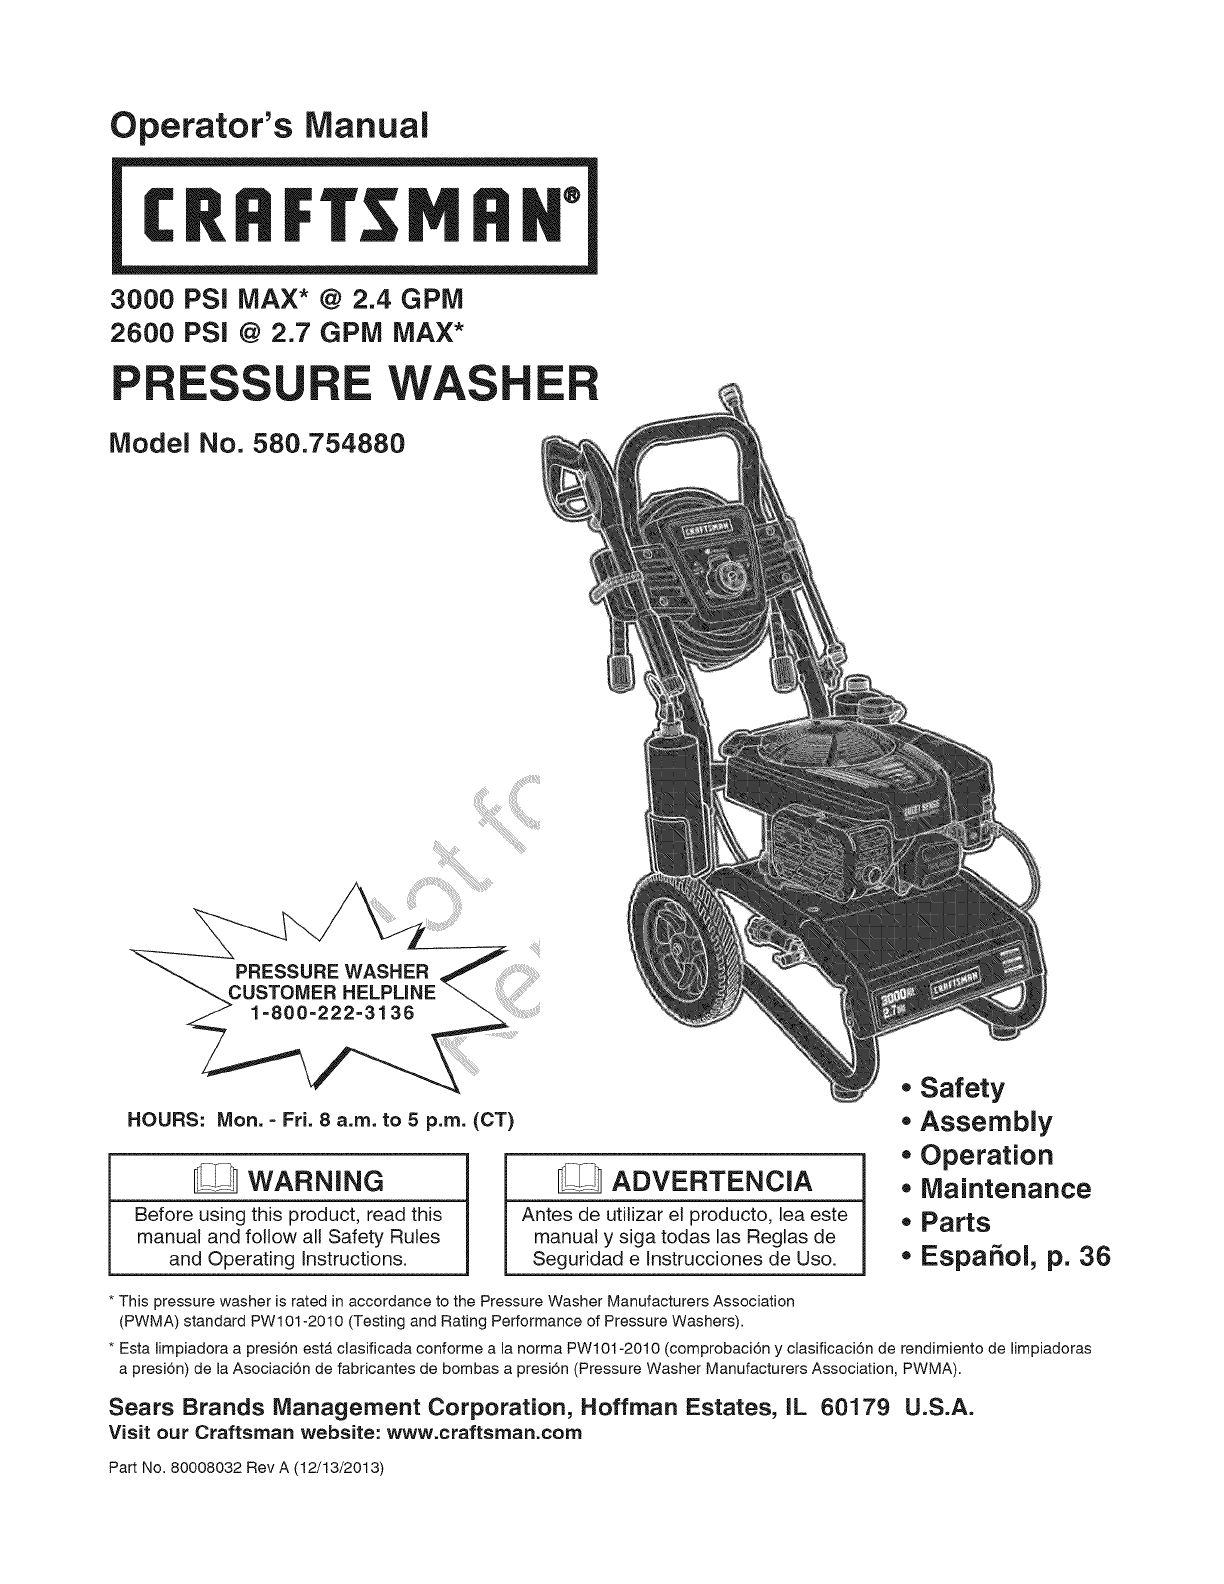 Briggs Stratton 020572 00 User Manual Power Washer Manuals And Just Bought A With Engine Guides 1402557l